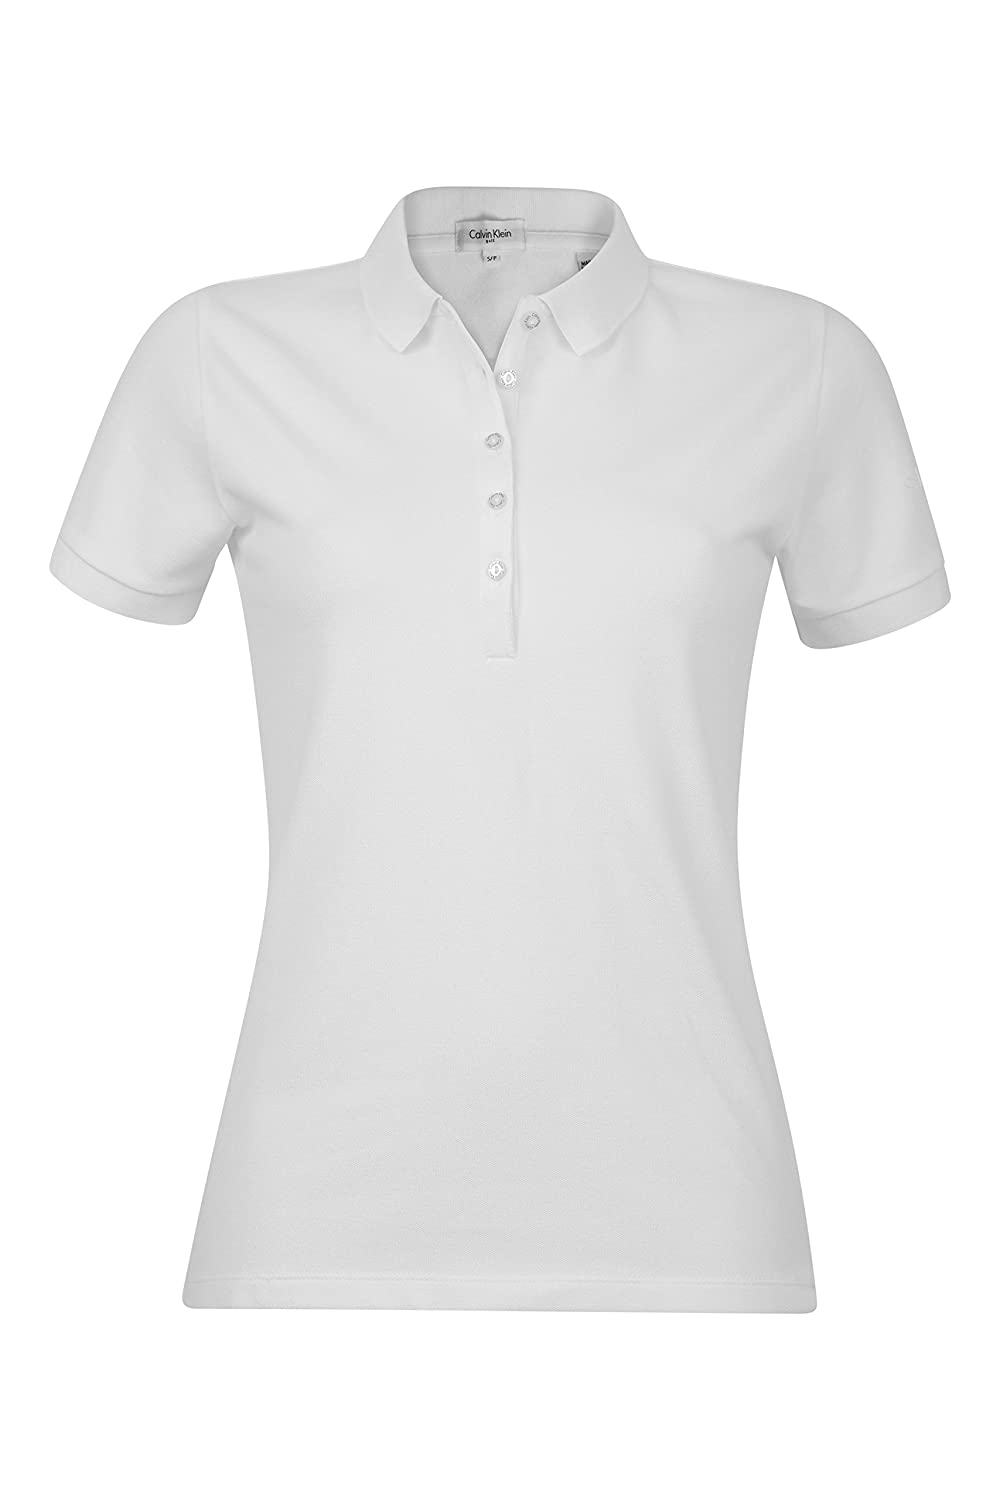 Calvin Klein señoras Radical Ladies Golf Polo: Amazon.es: Deportes ...